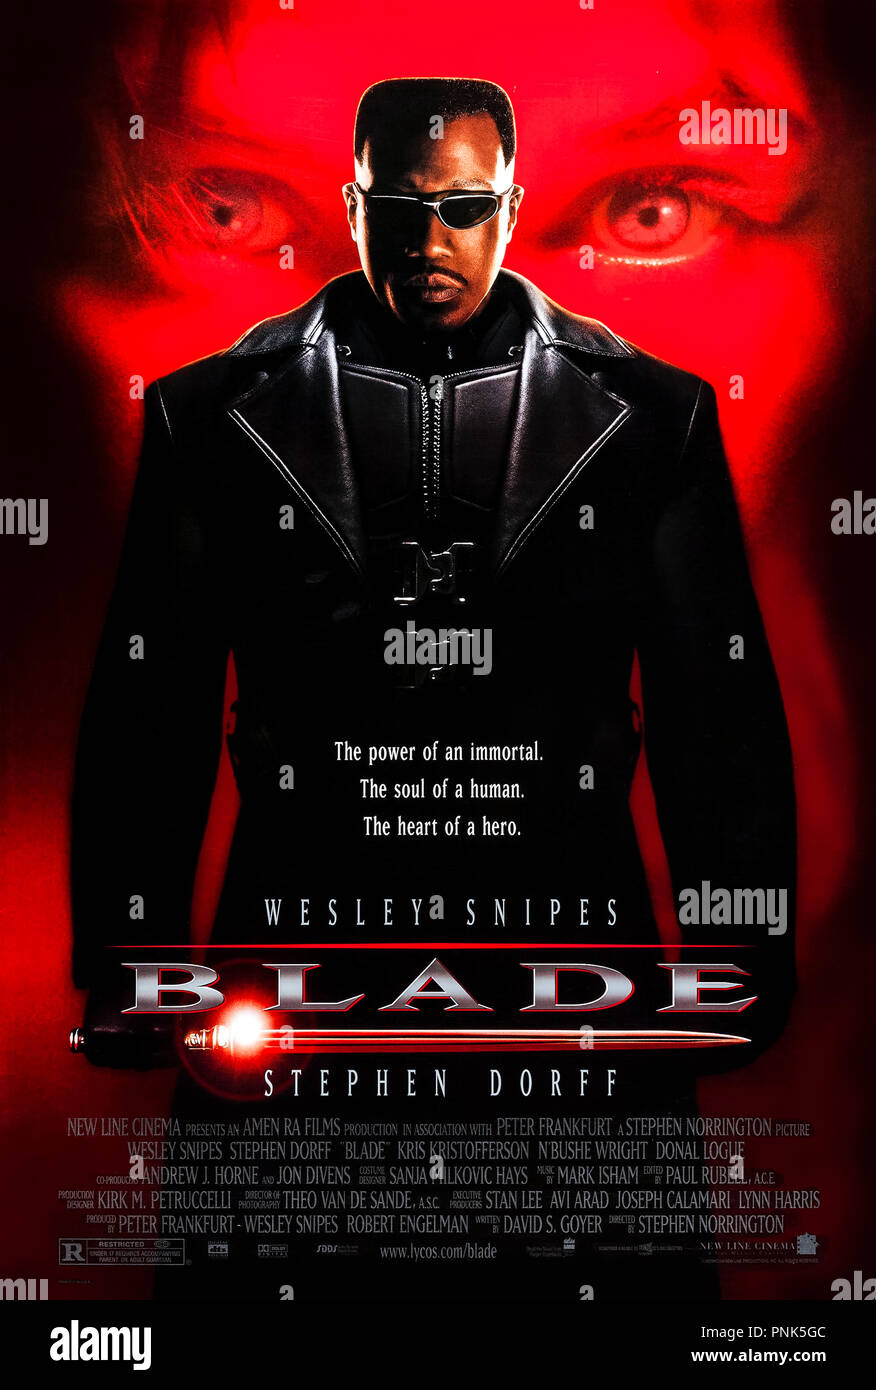 Blade (1998) directed by Stephen Norrington and starring Wesley Snipes, Stephen Dorff, Kris Kristofferson and N'Bushe Wright. Blade, half human and half vampire tries to rid the world of vampires. - Stock Image